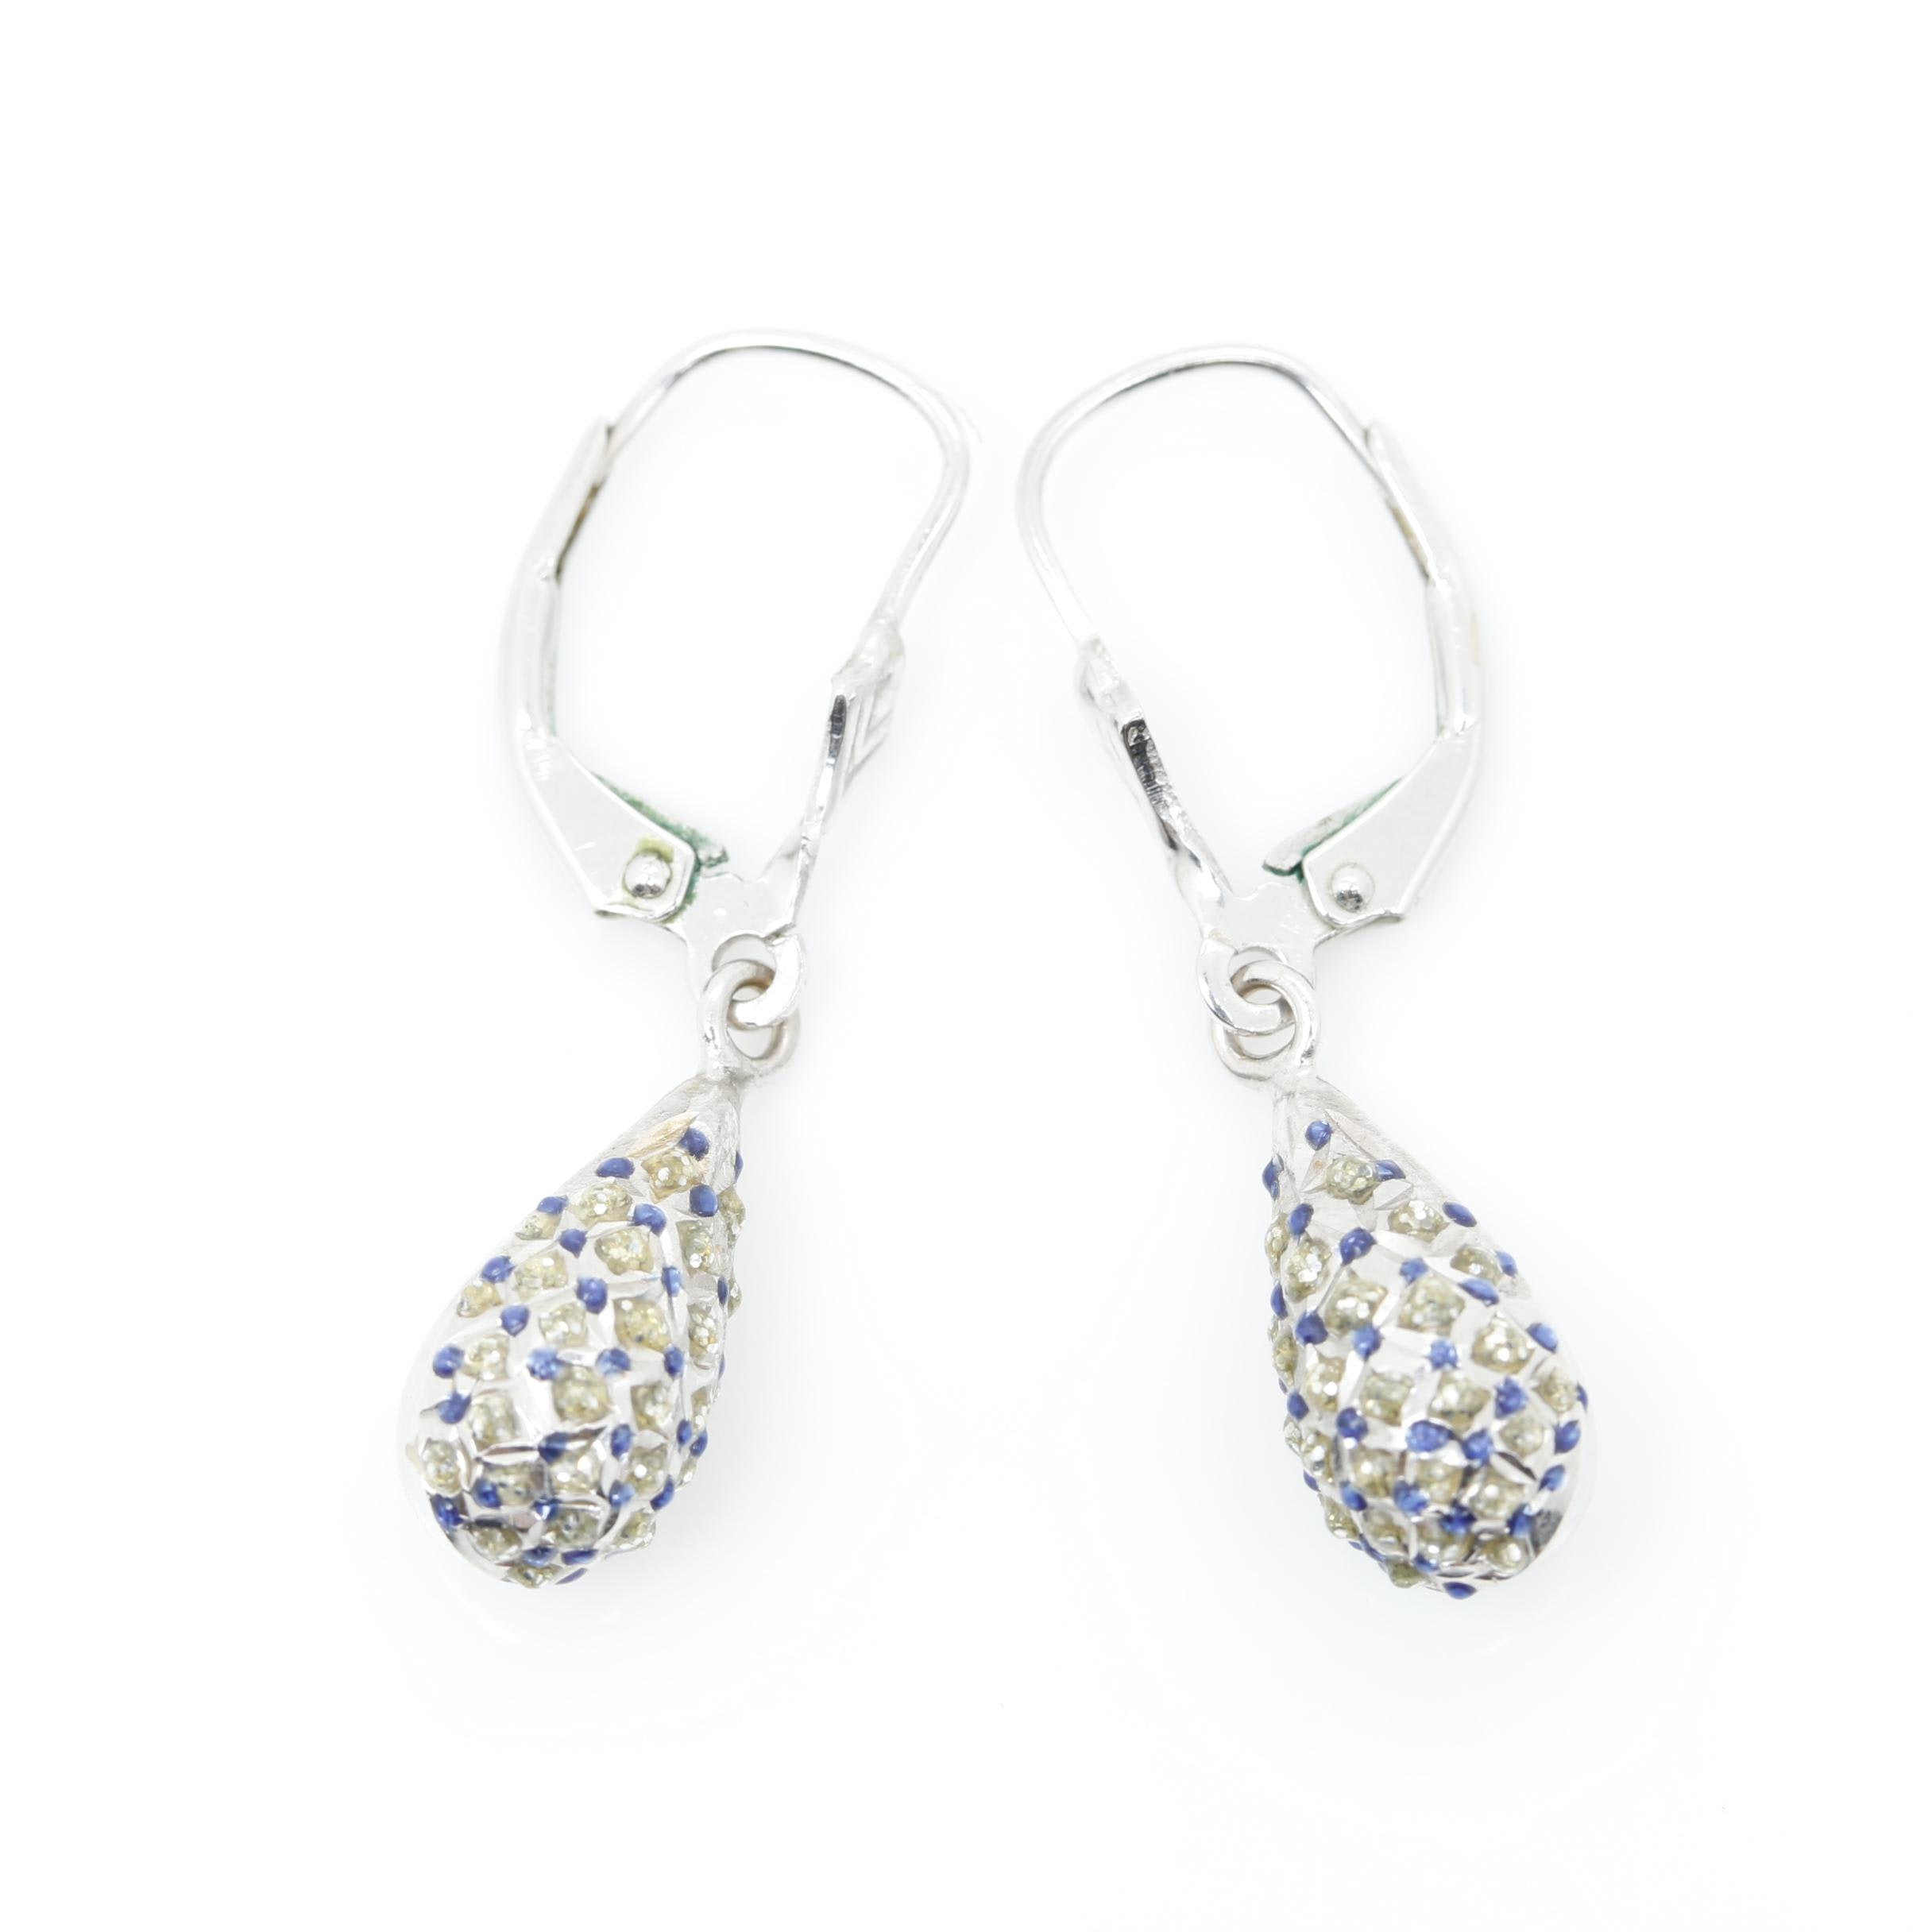 14K White Gold Glitter In Resin and Enamel Drop Earrings